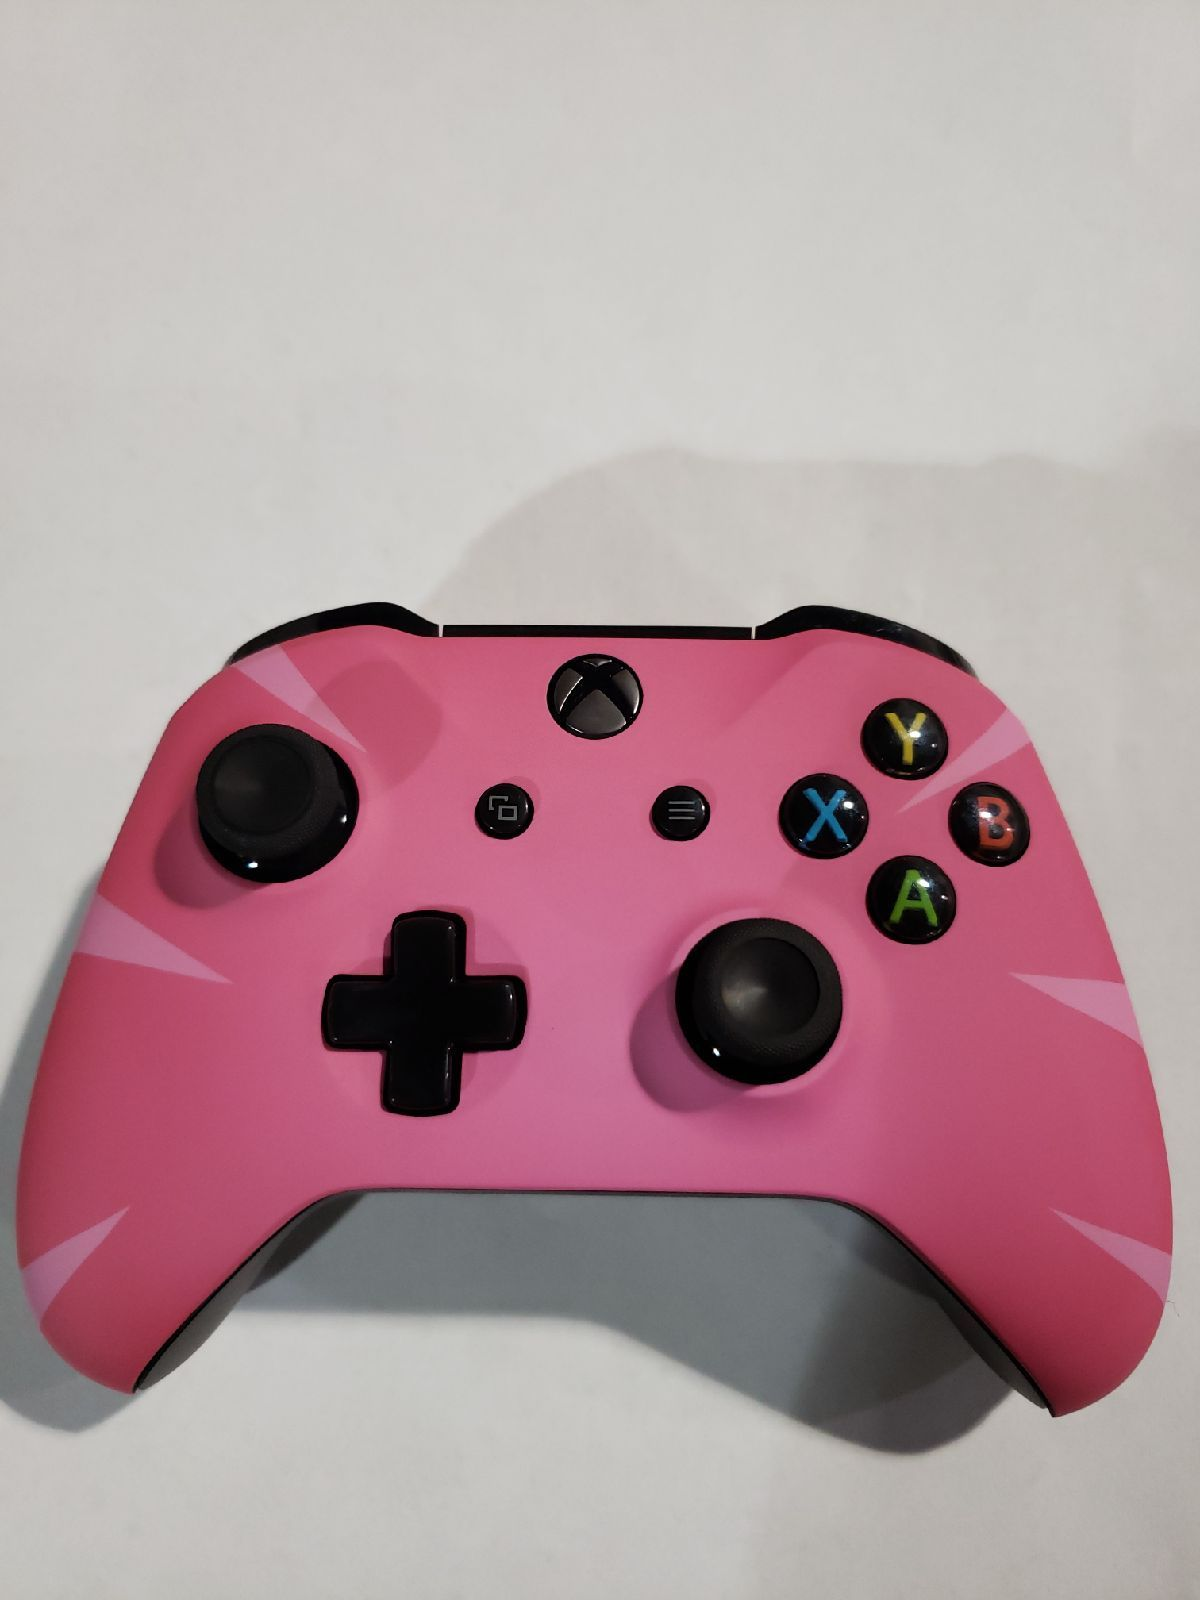 Does Xbox 360 Controller Work With Fortnite Fortnite Pink Xbox One Controller Custom Xbox One Controller Xbox Xbox One